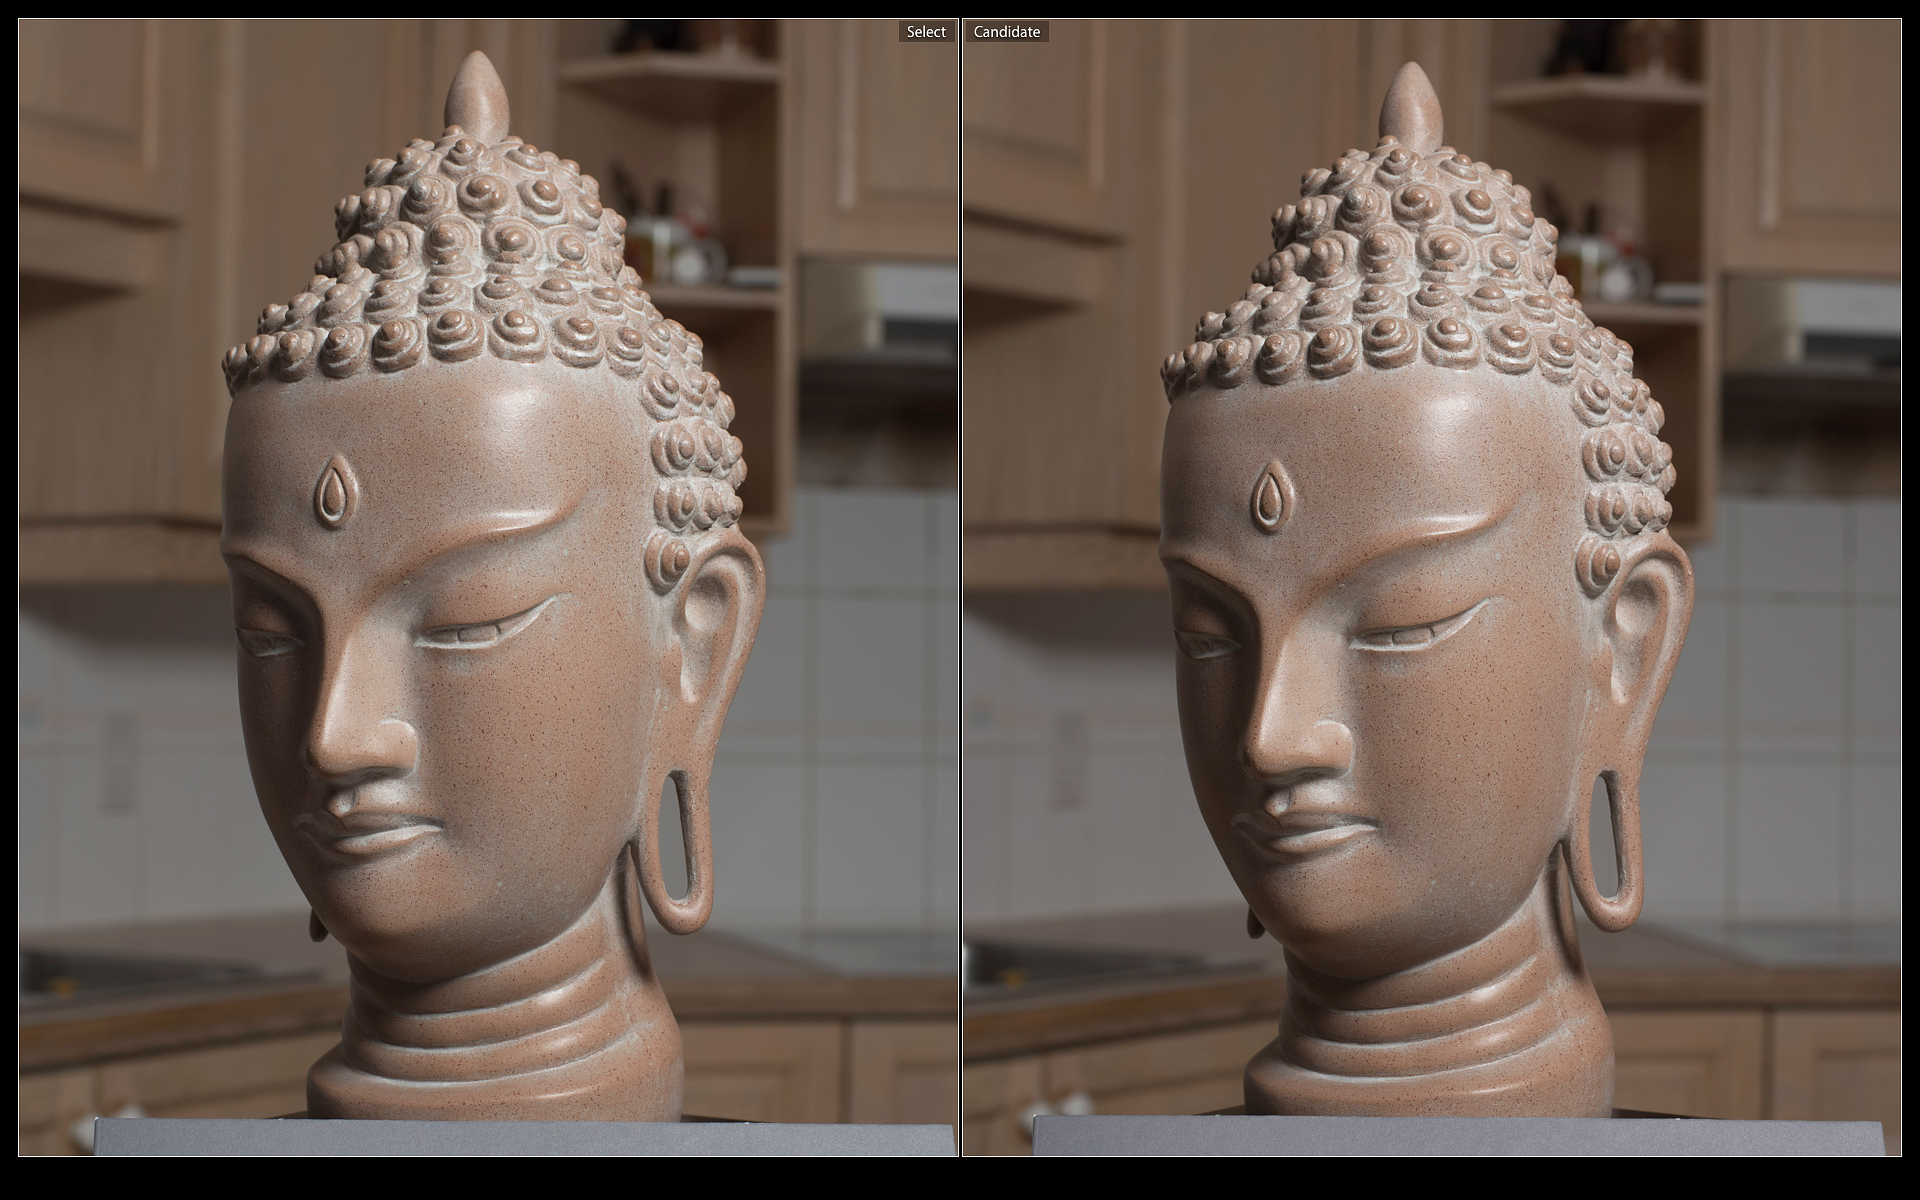 Nikkor AF 50mm 1.4D left, Sigma 50mm 1.4 ART right. 7 elements vs. 13. On the right, notice the lack of contrast in the background as well as the lack of tonality on the status head. This behavior is very similar to a cheap zoom.